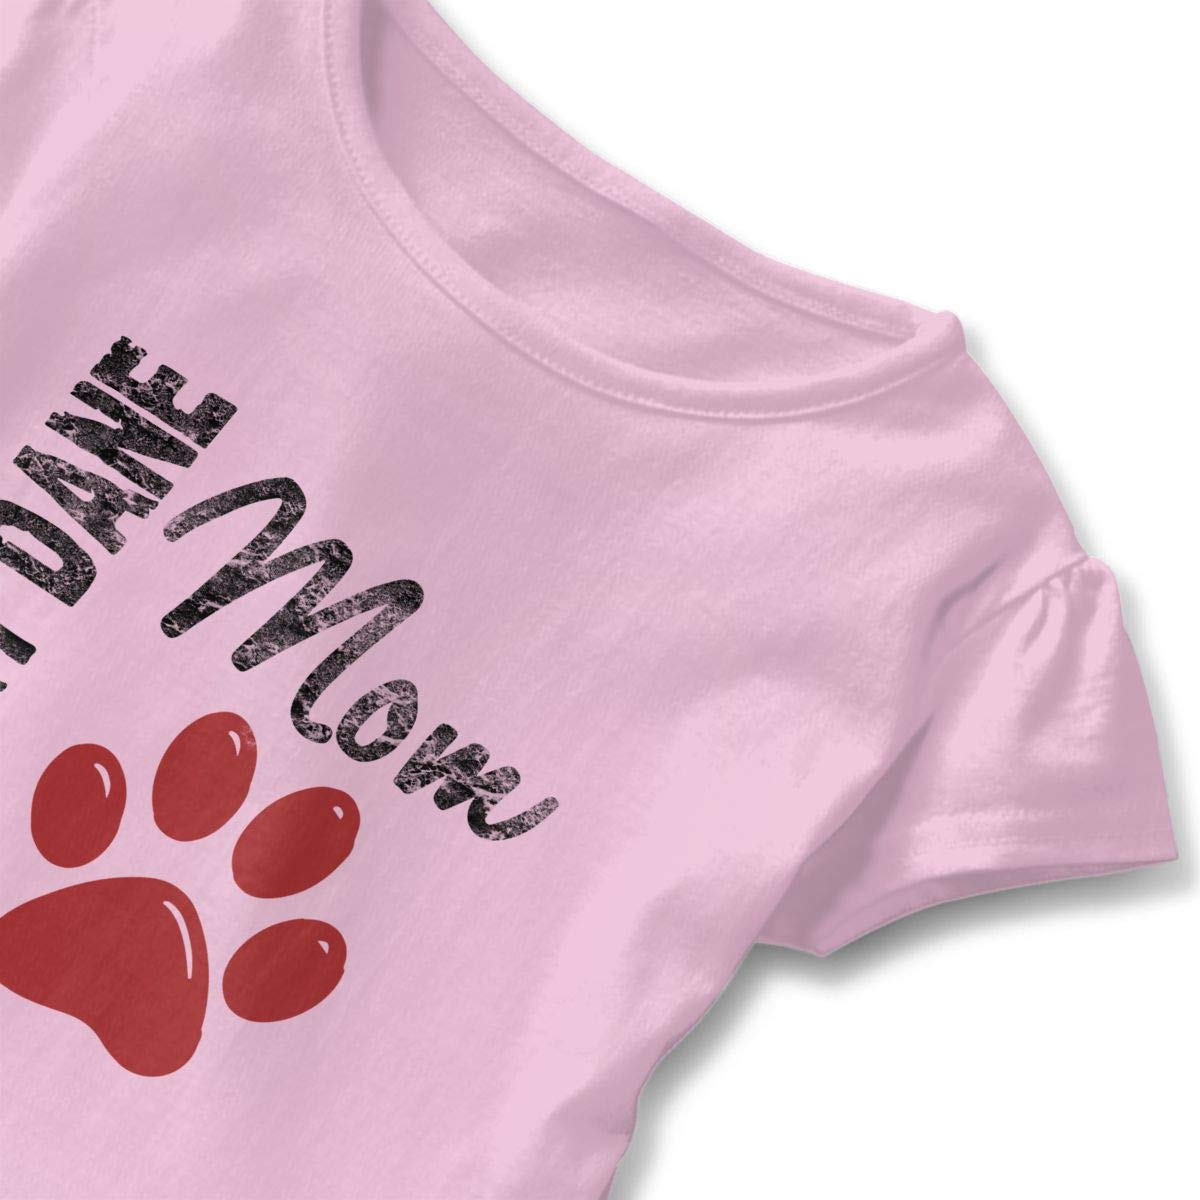 CZnuen Great DANE MOM Baby Girls Basic Short Puff Sleeve Round Neck Ruffle T-Shirt